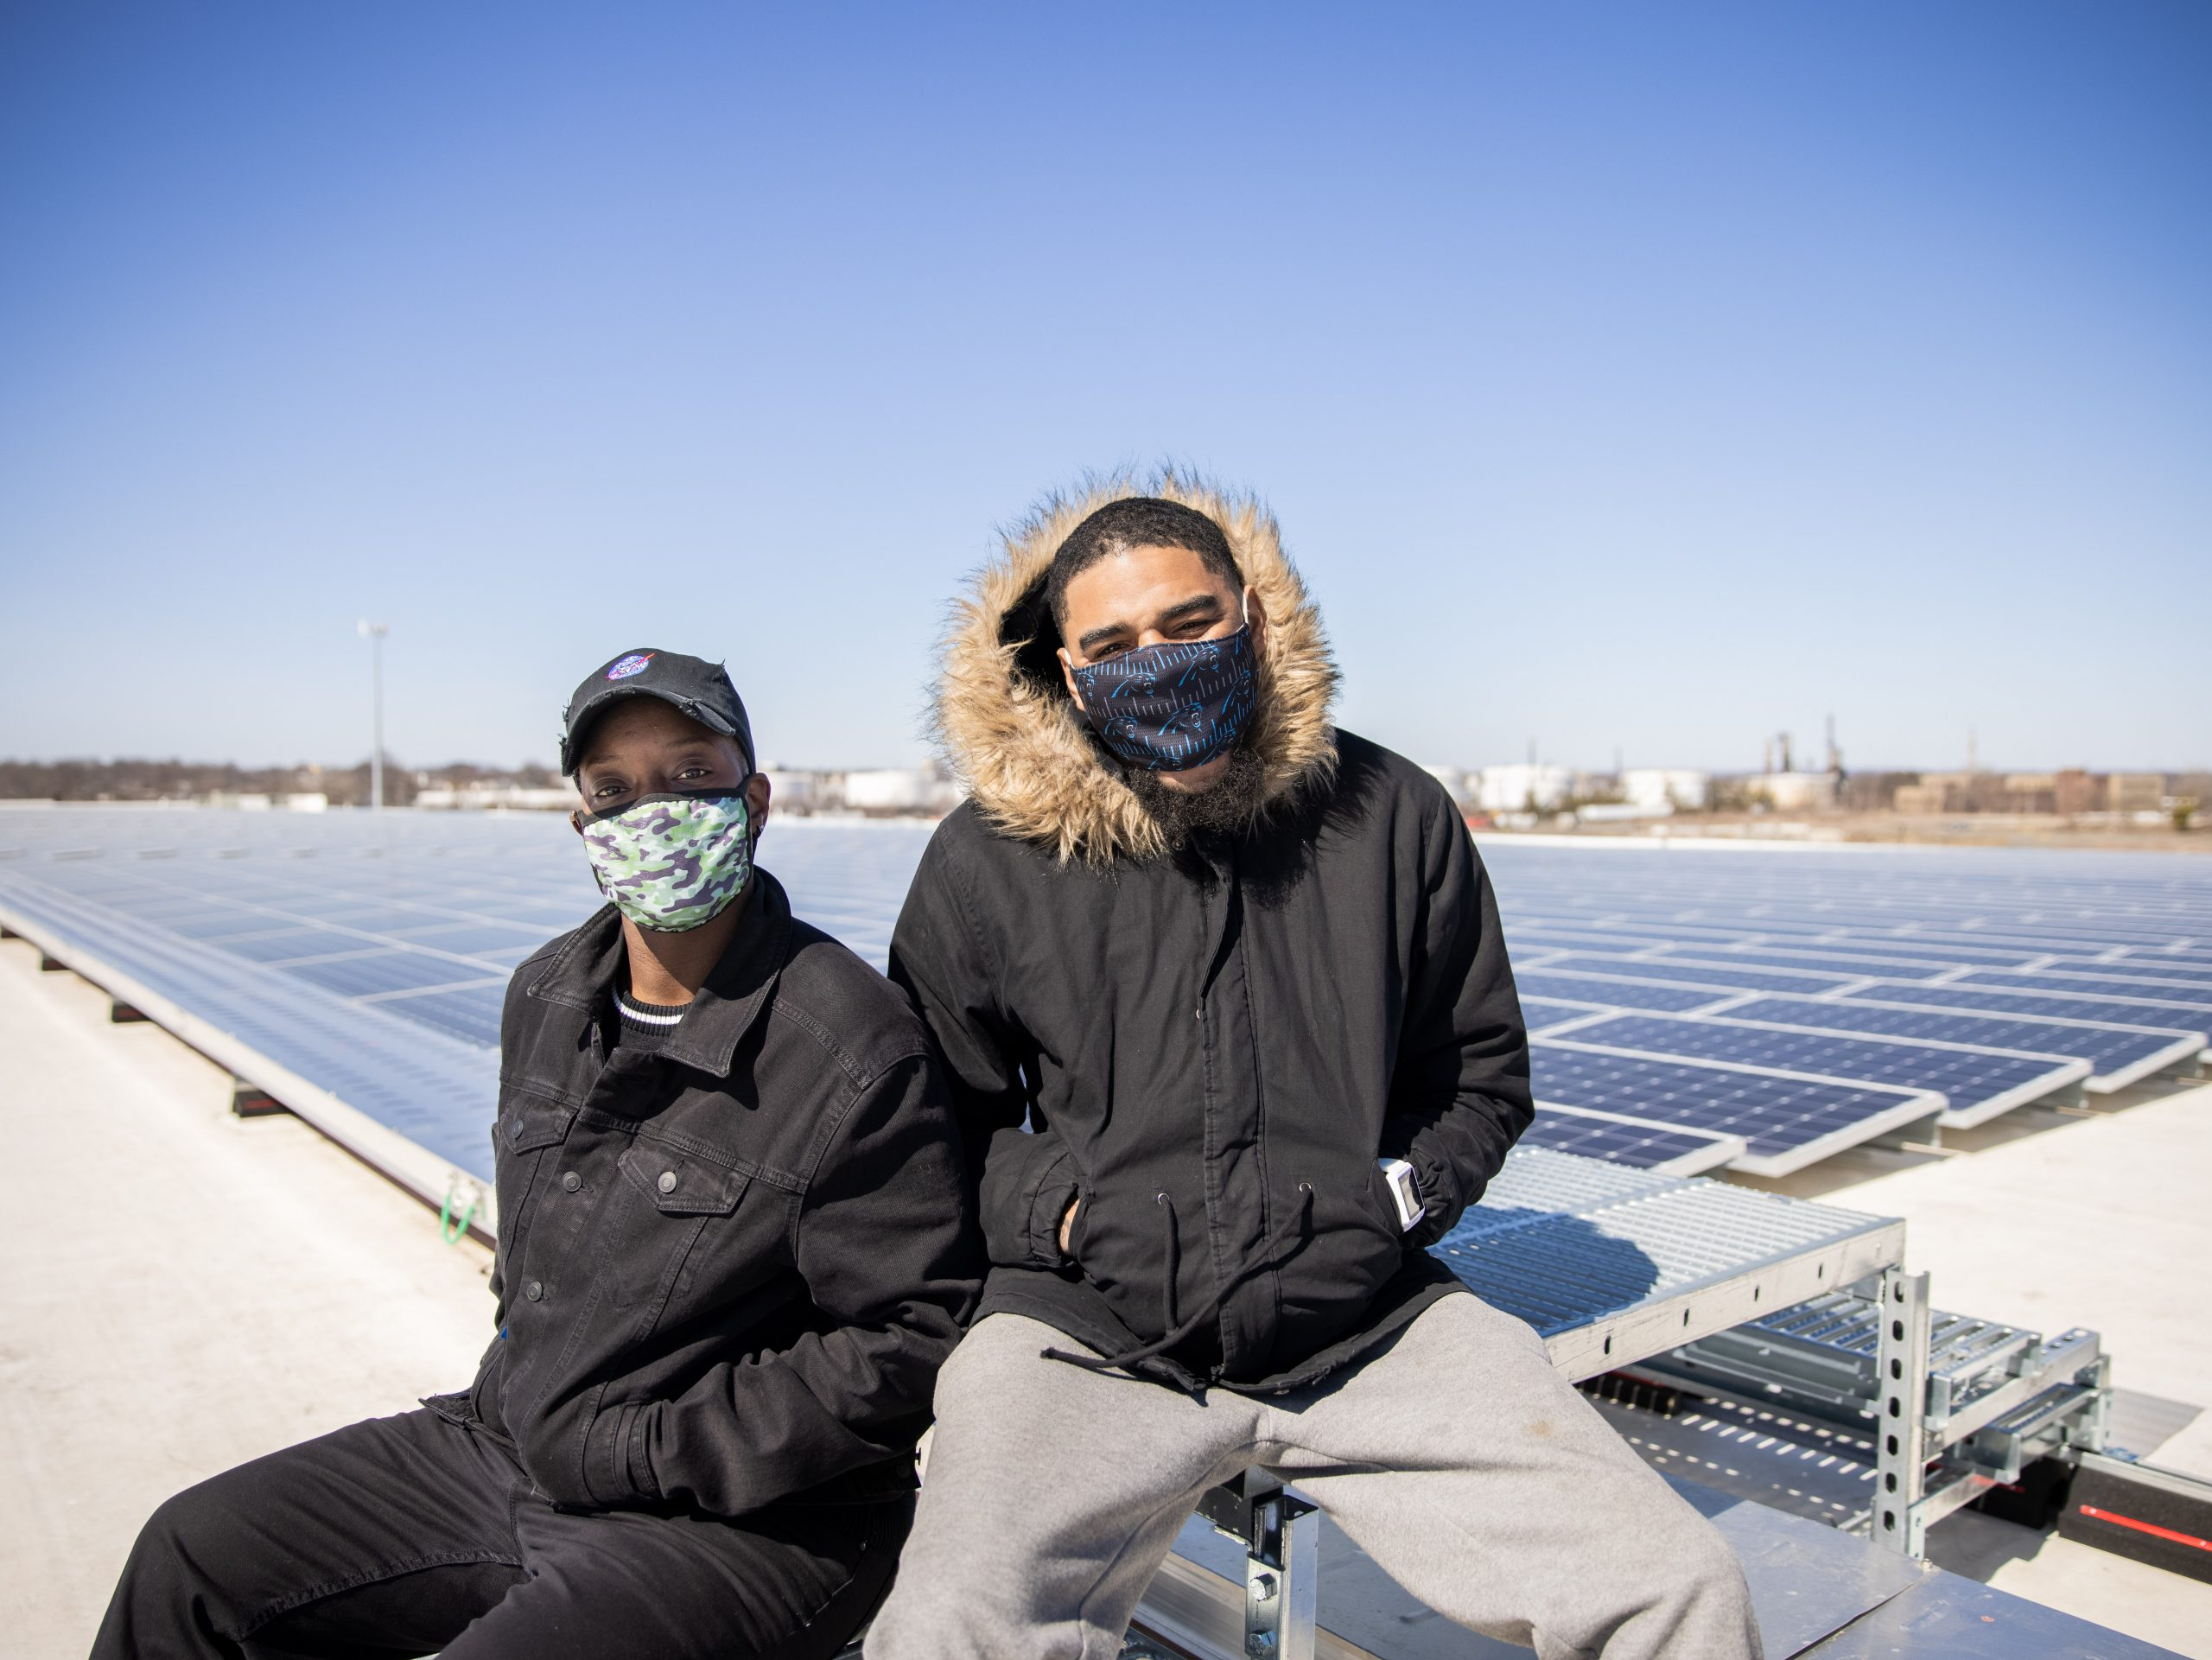 Big strides for energy equity in New Jersey